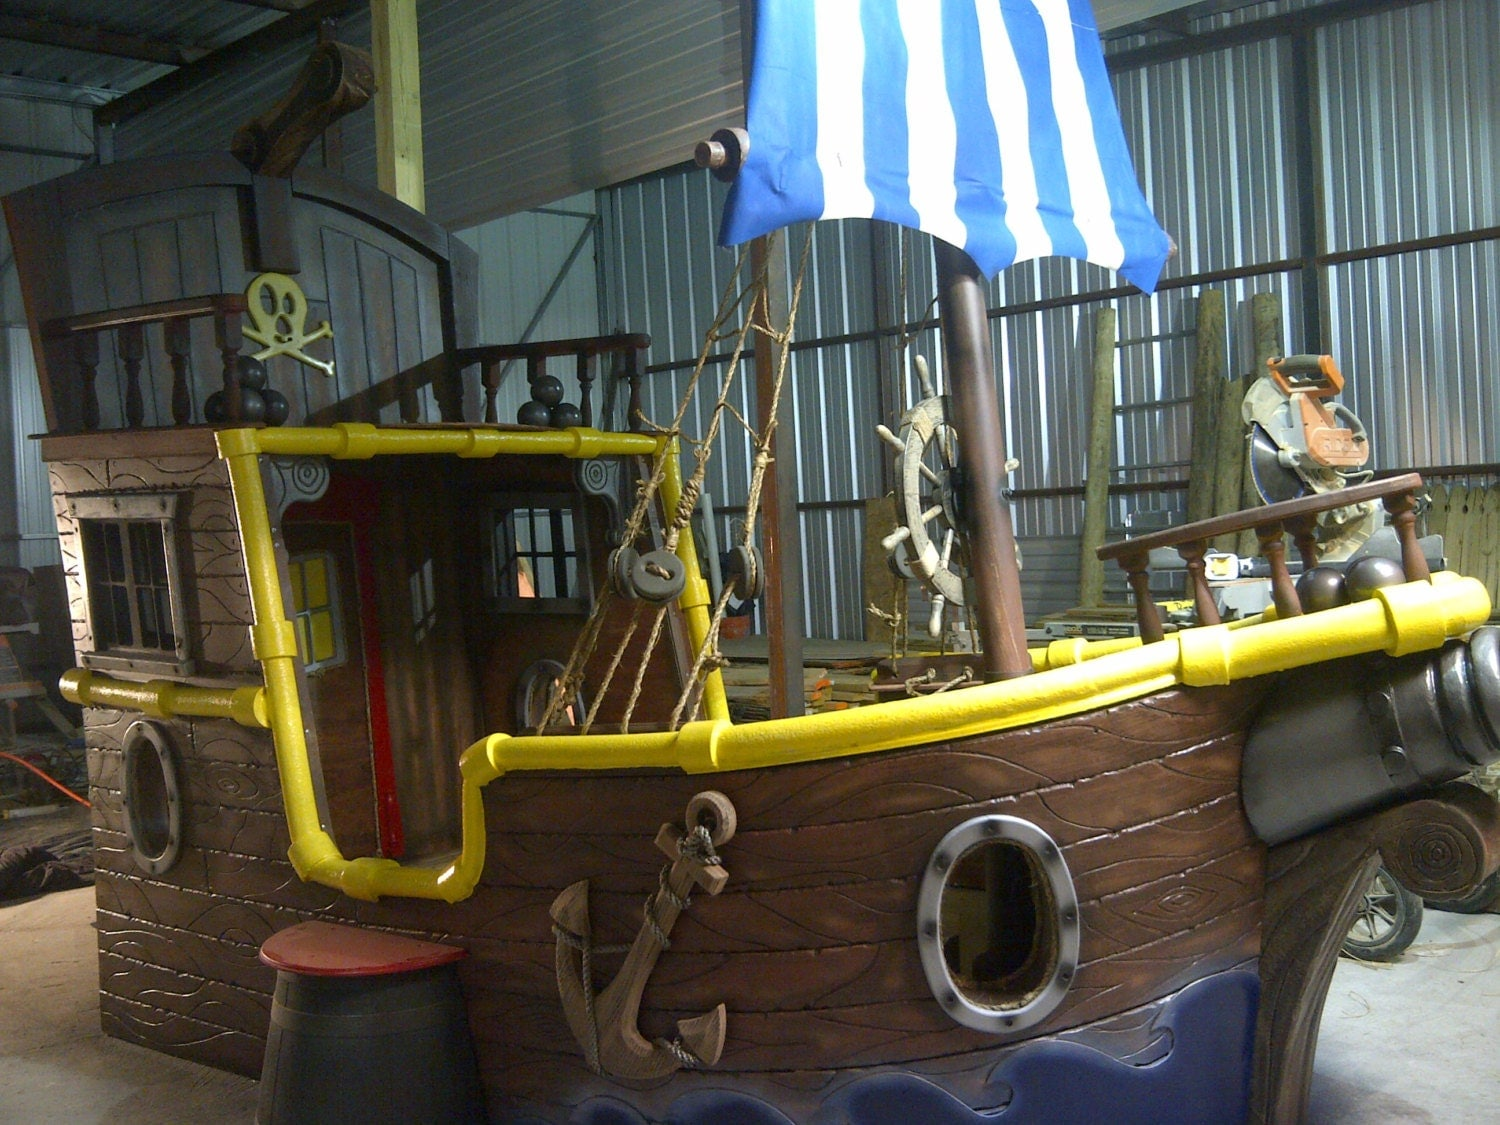 Jake and the neverland pirates custom bed for Rooms to go kids sale